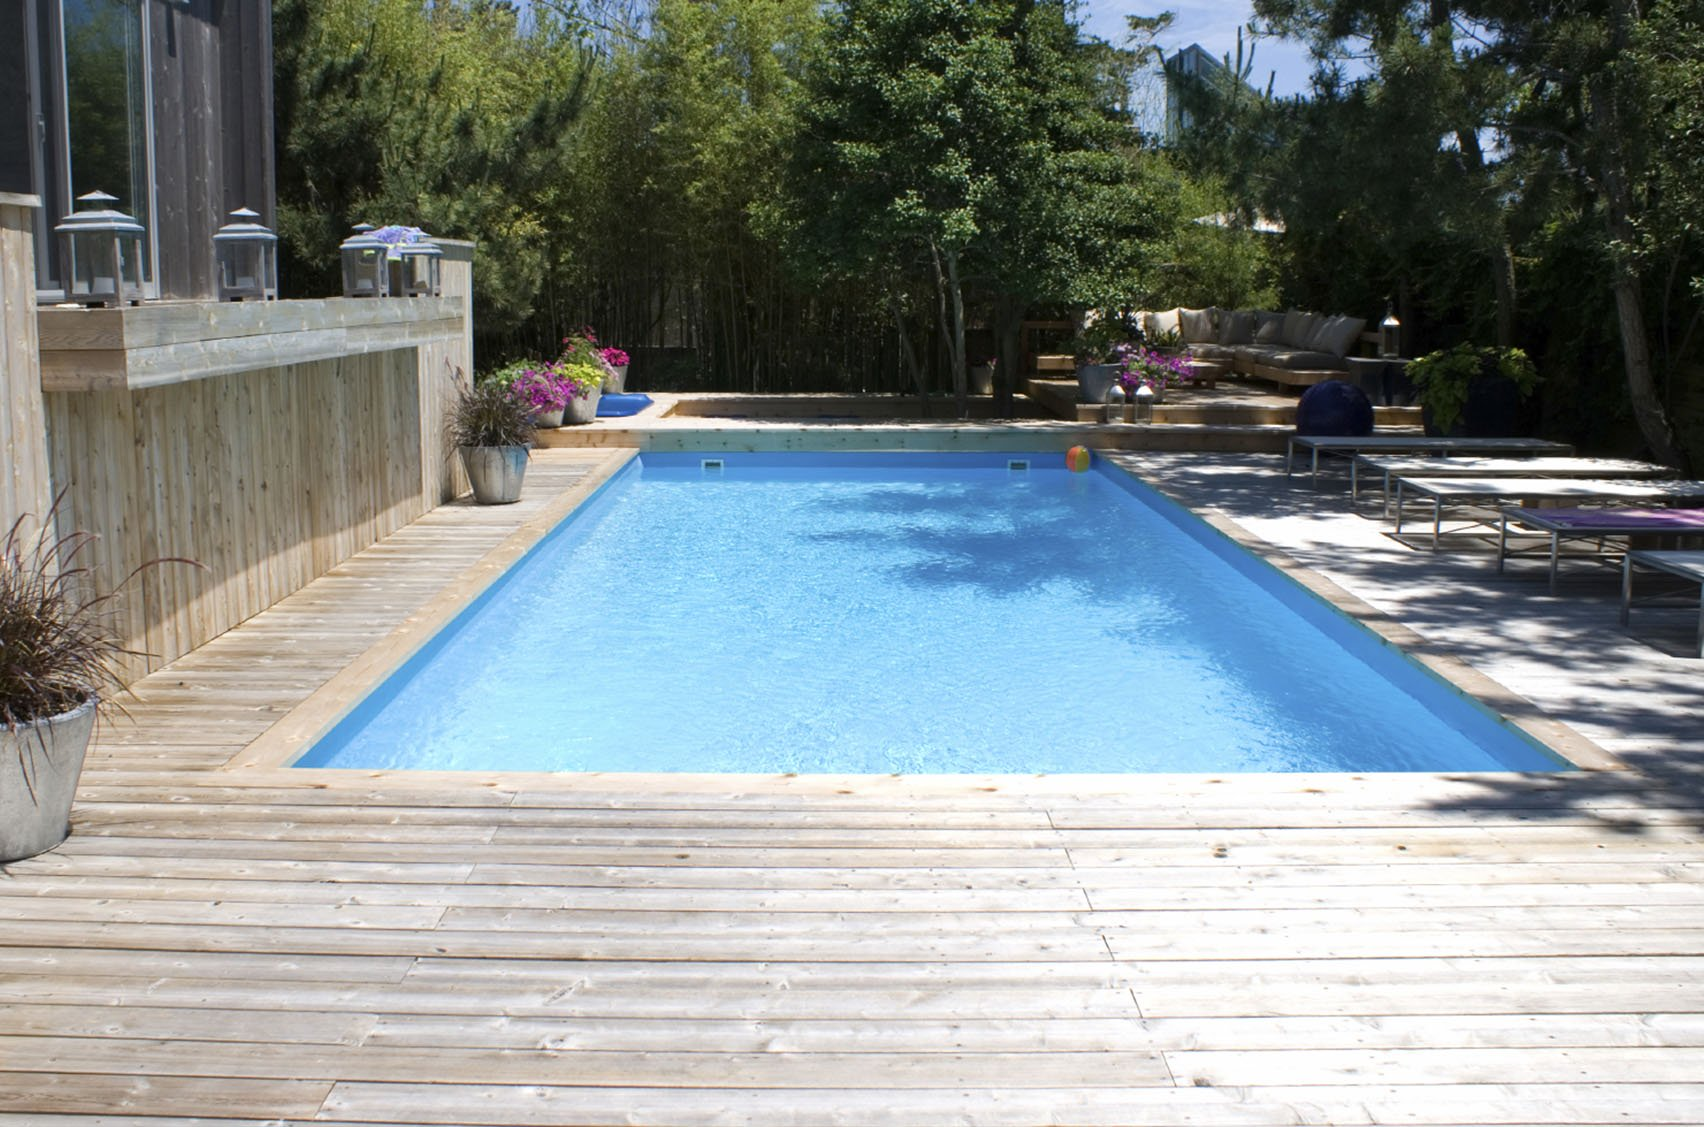 Pool deck wood example reston virginia pool design for Pool design virginia